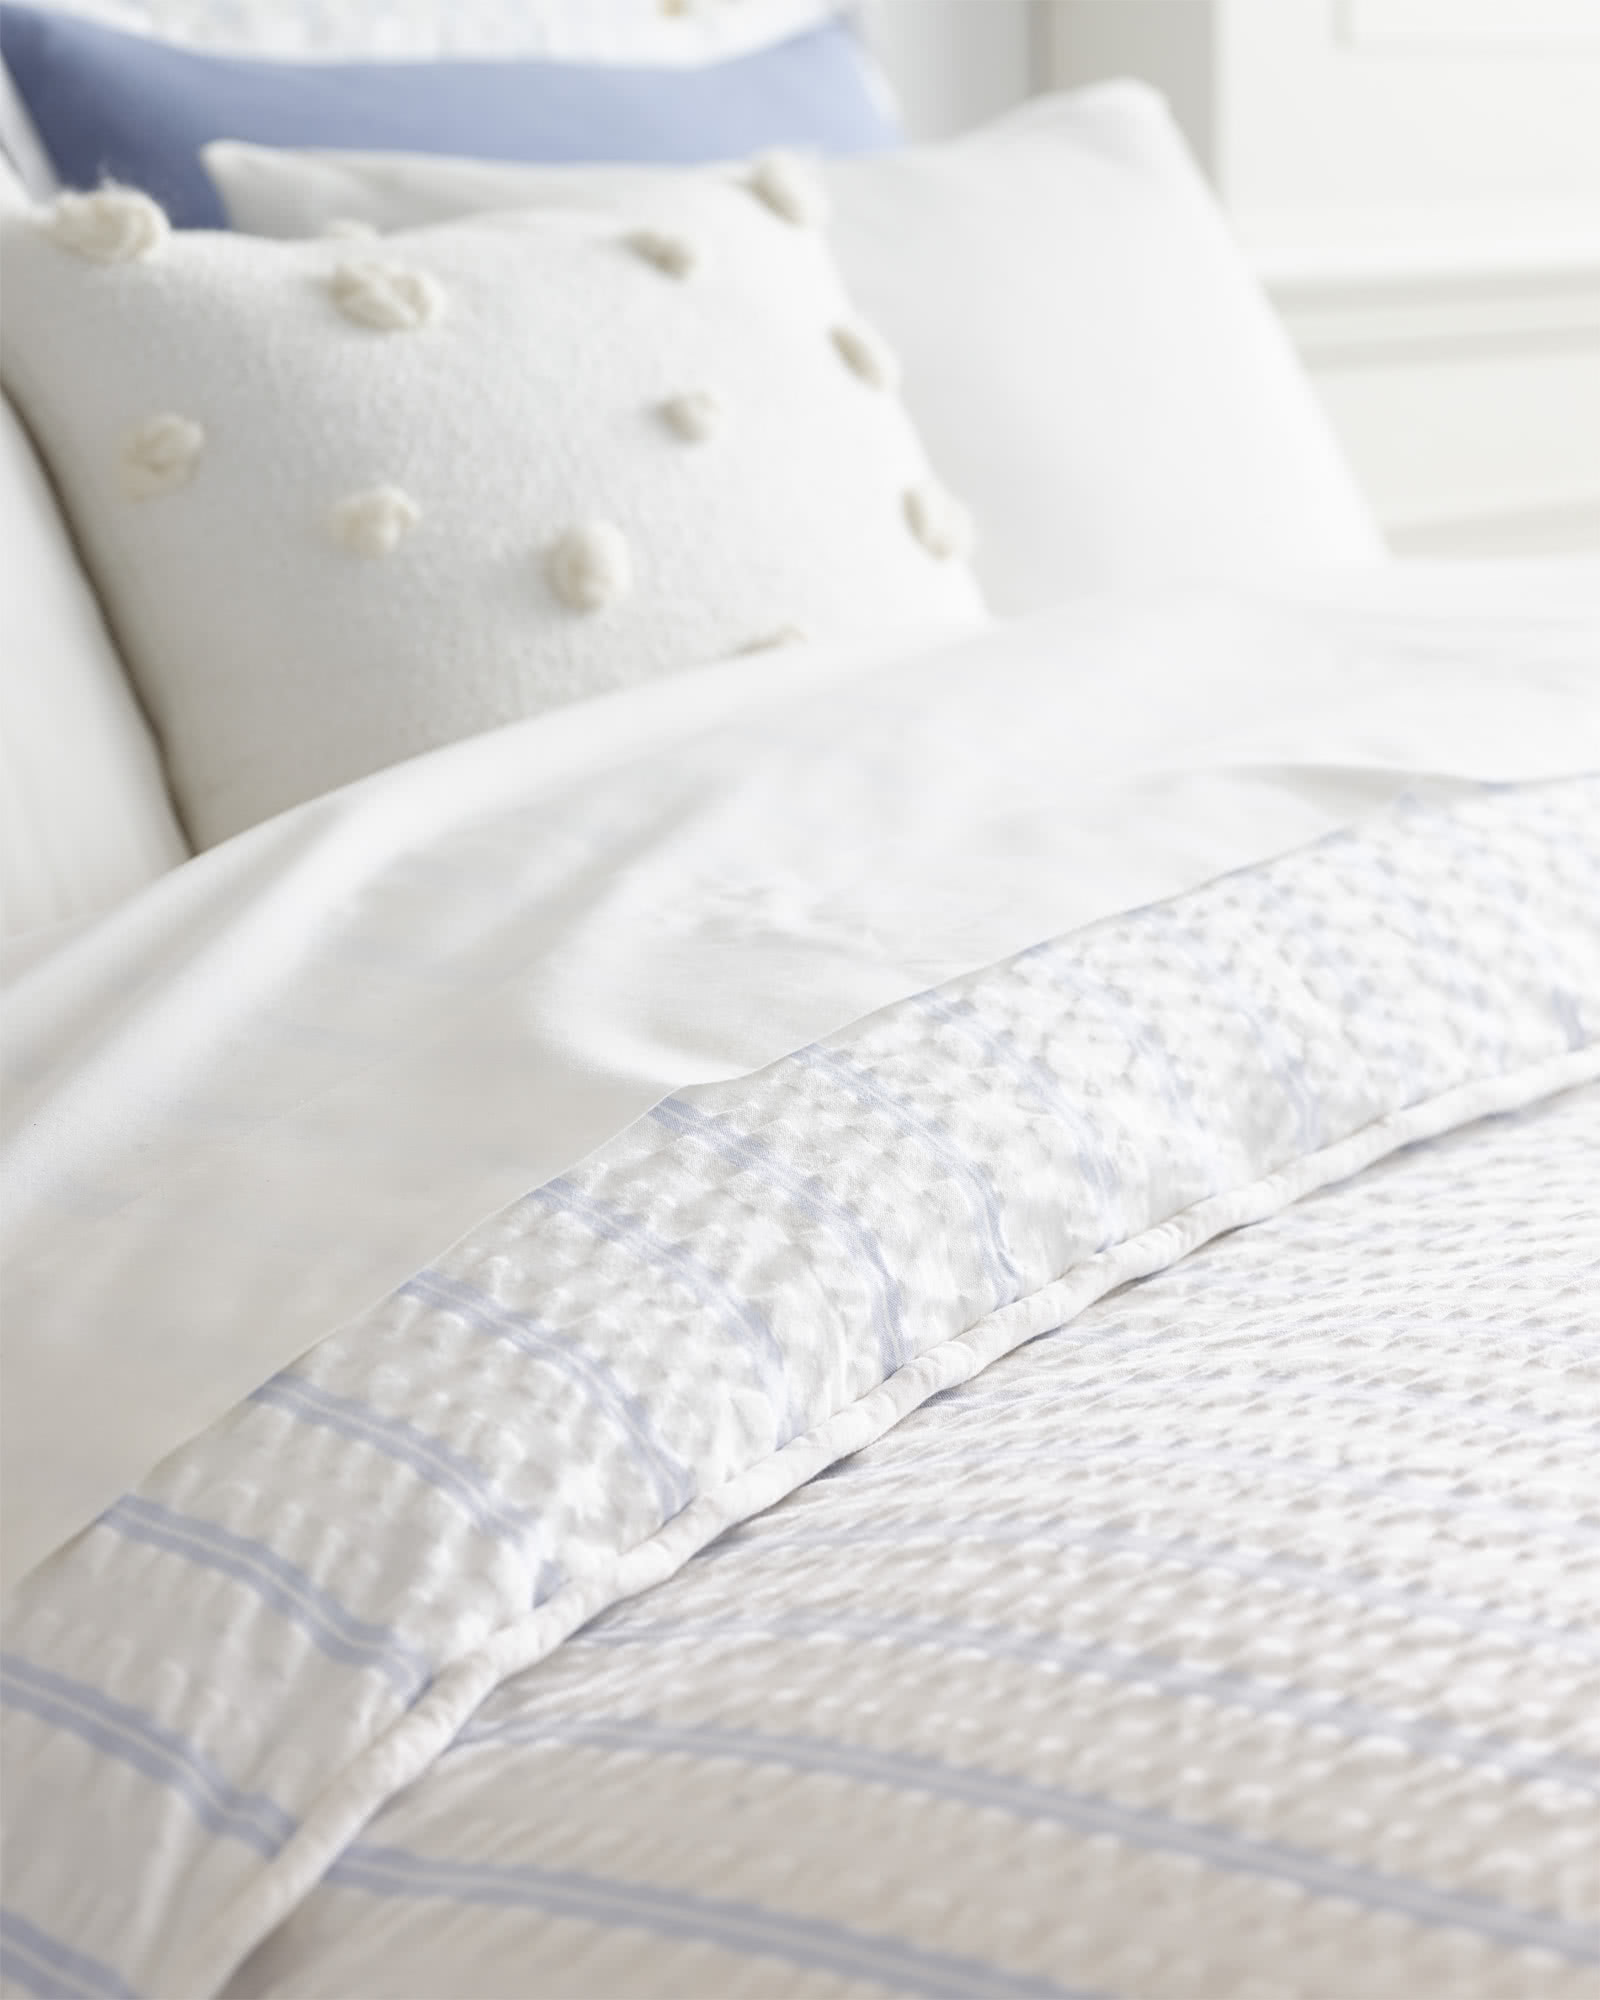 reviews cover bed seersucker bedding pdx home wayfair bath elizabeth collection amity duvet